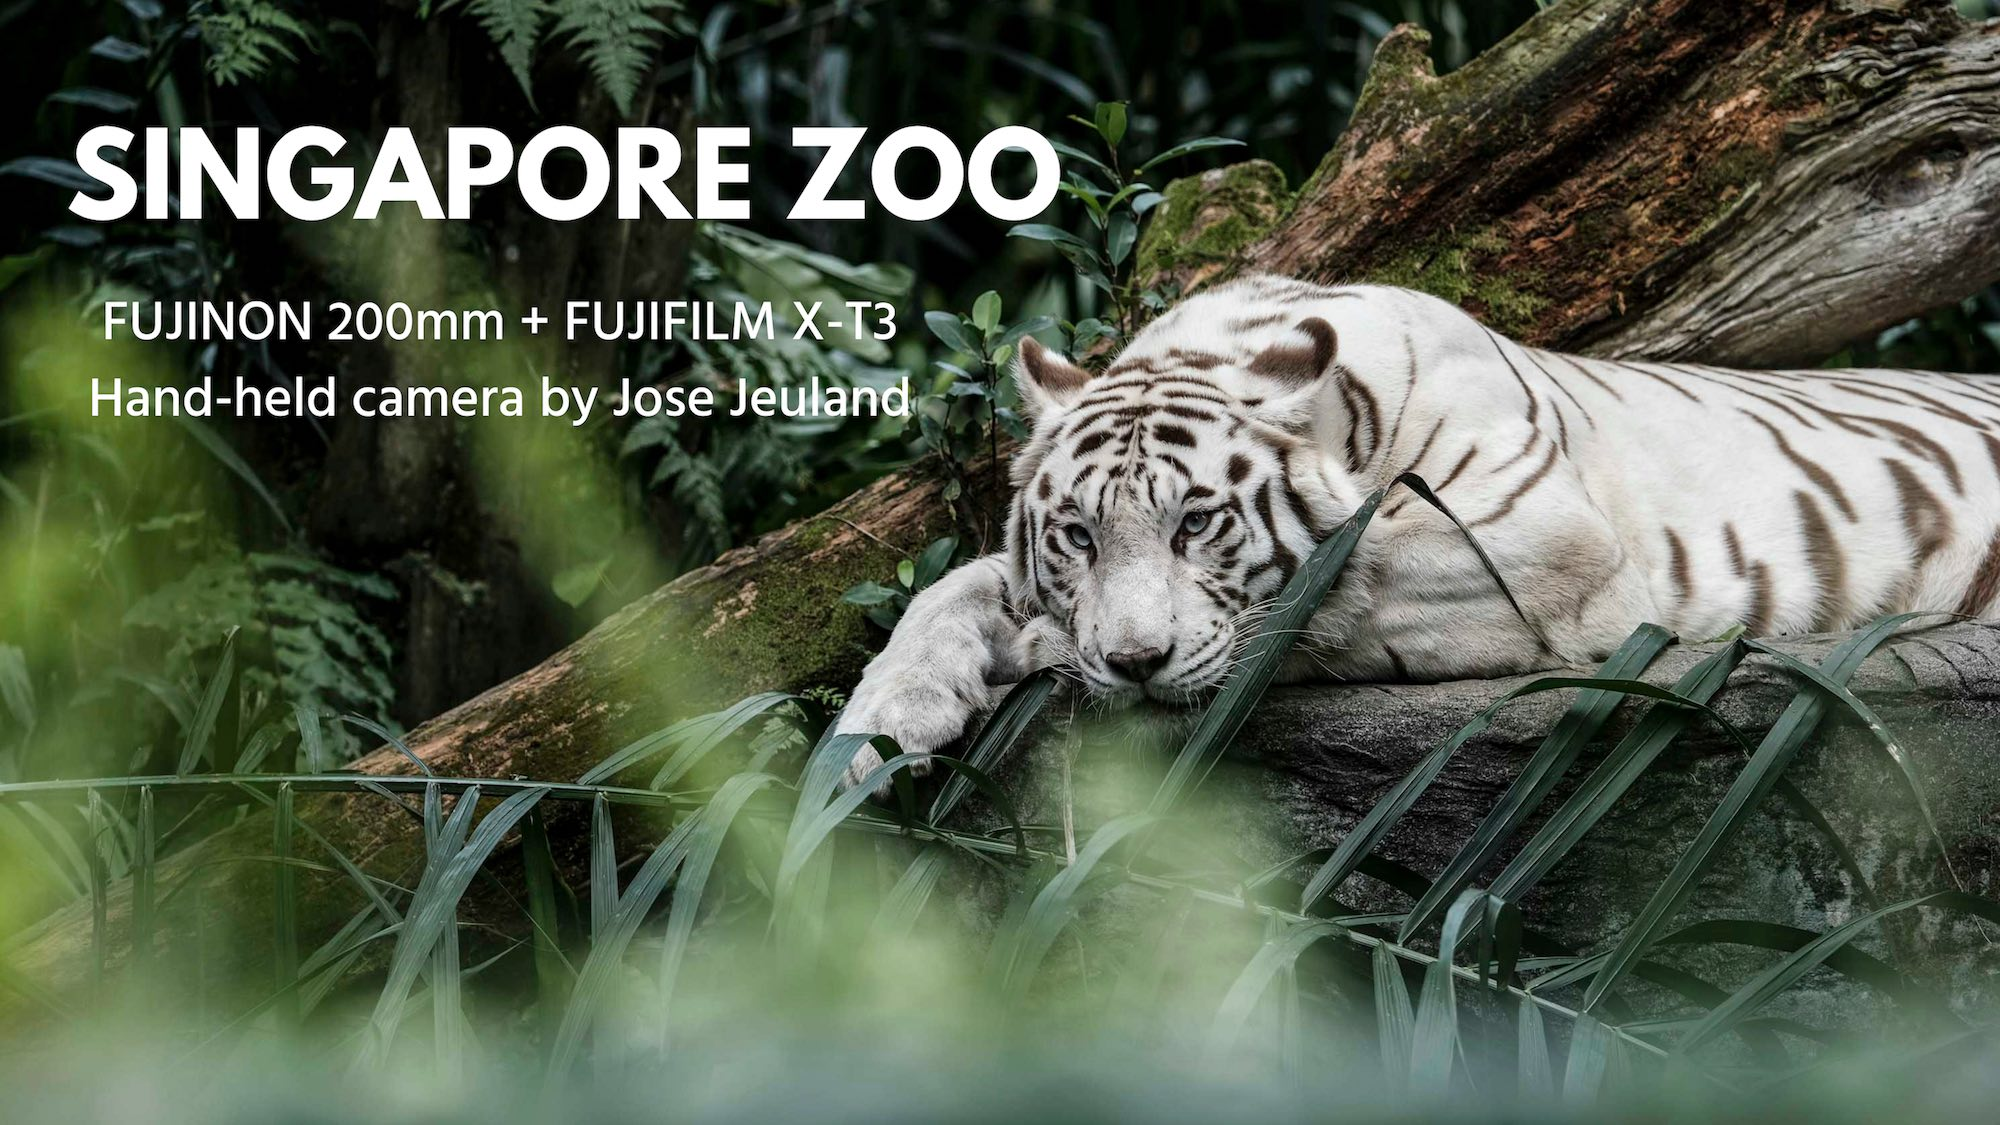 Images At The Singapore Zoo